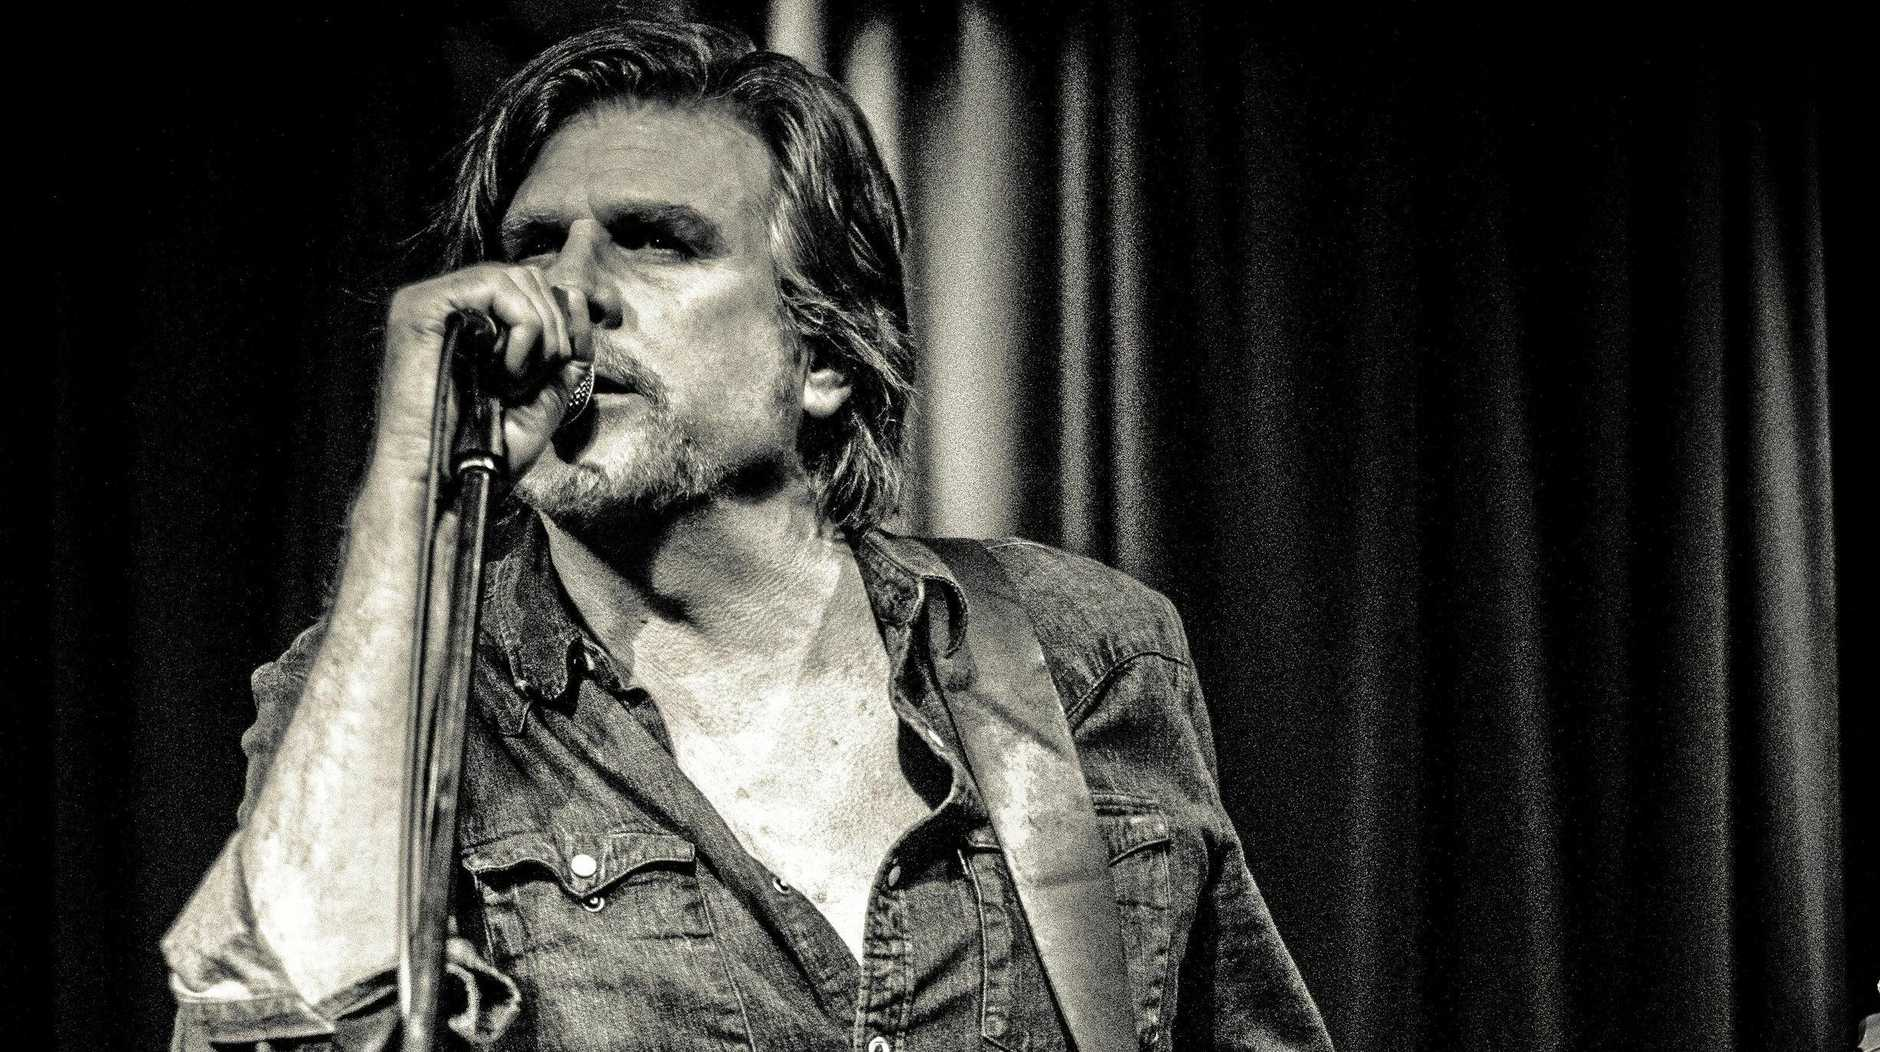 MUSTER-BOUND: Tex Perkins & The Fat Rubber Band will play at the 2019 Gympie Muster.